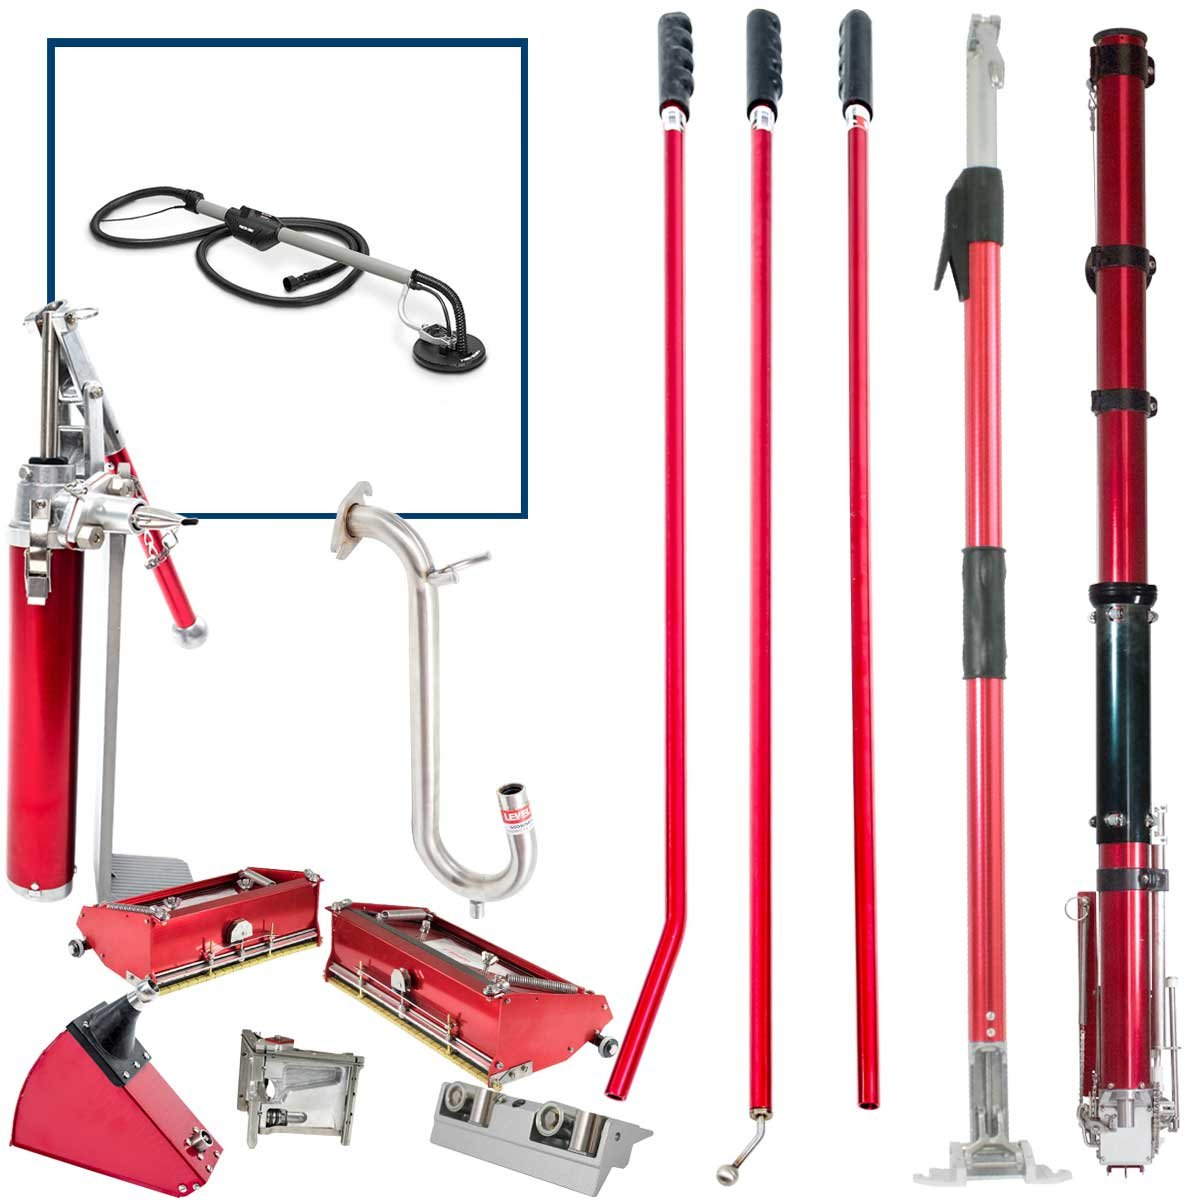 Level5 Full Drywall Taping / Finishing Set with PORTER CABLE 7800 SANDER and FREE Extendable Flat Box Handle